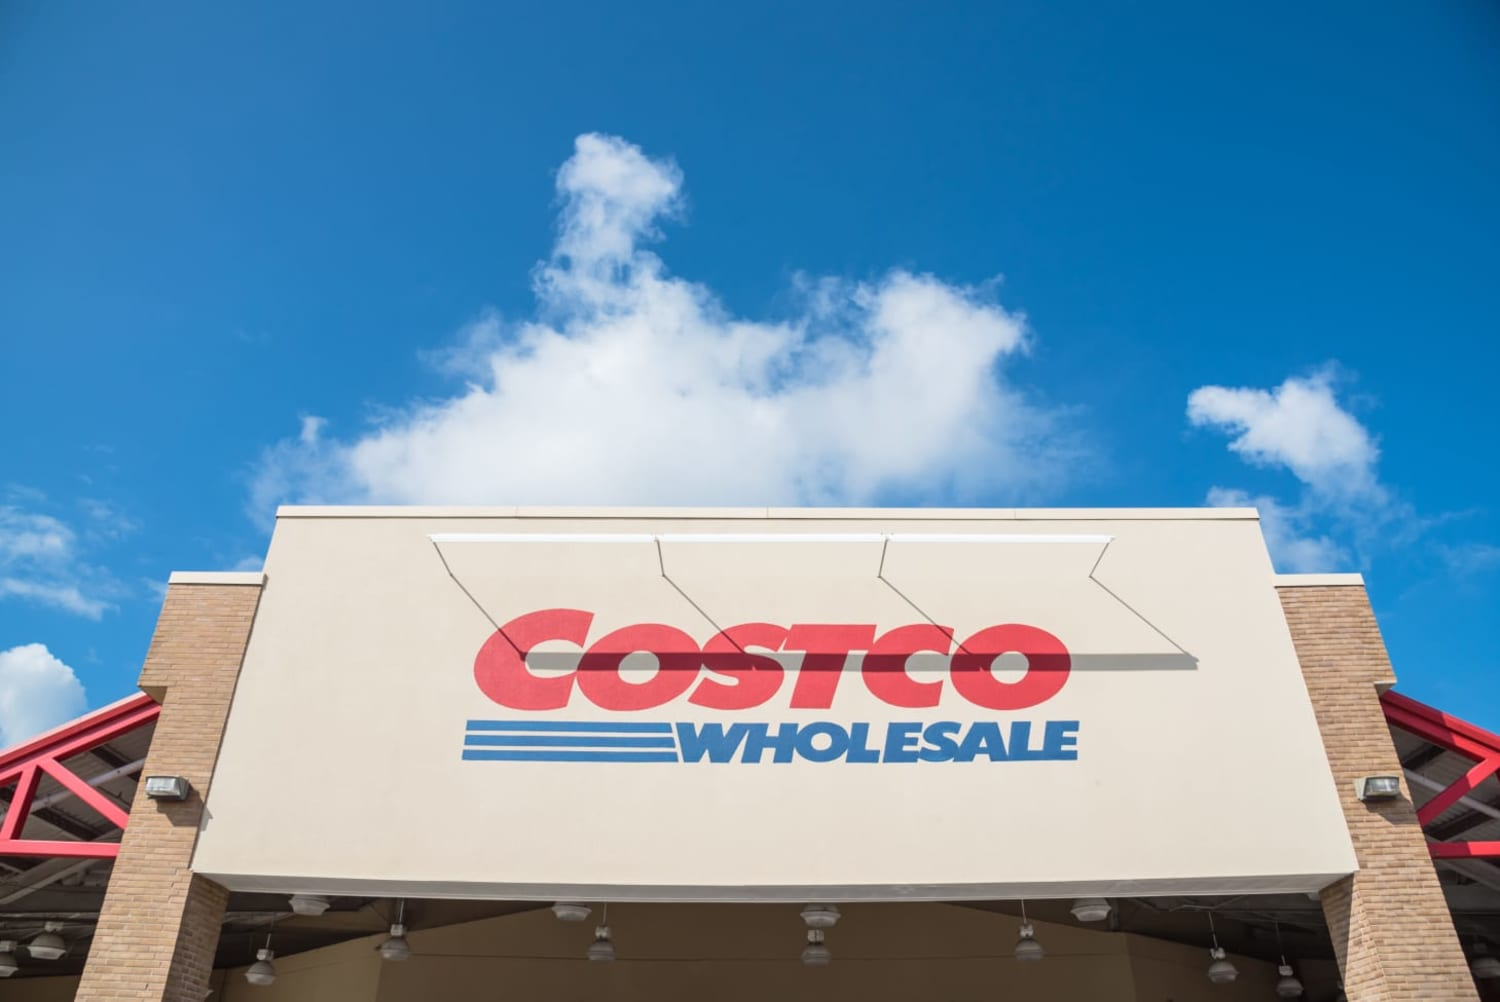 6 of Our Favorite Home Decor Items to Snag at Costco, Starting at $24.99